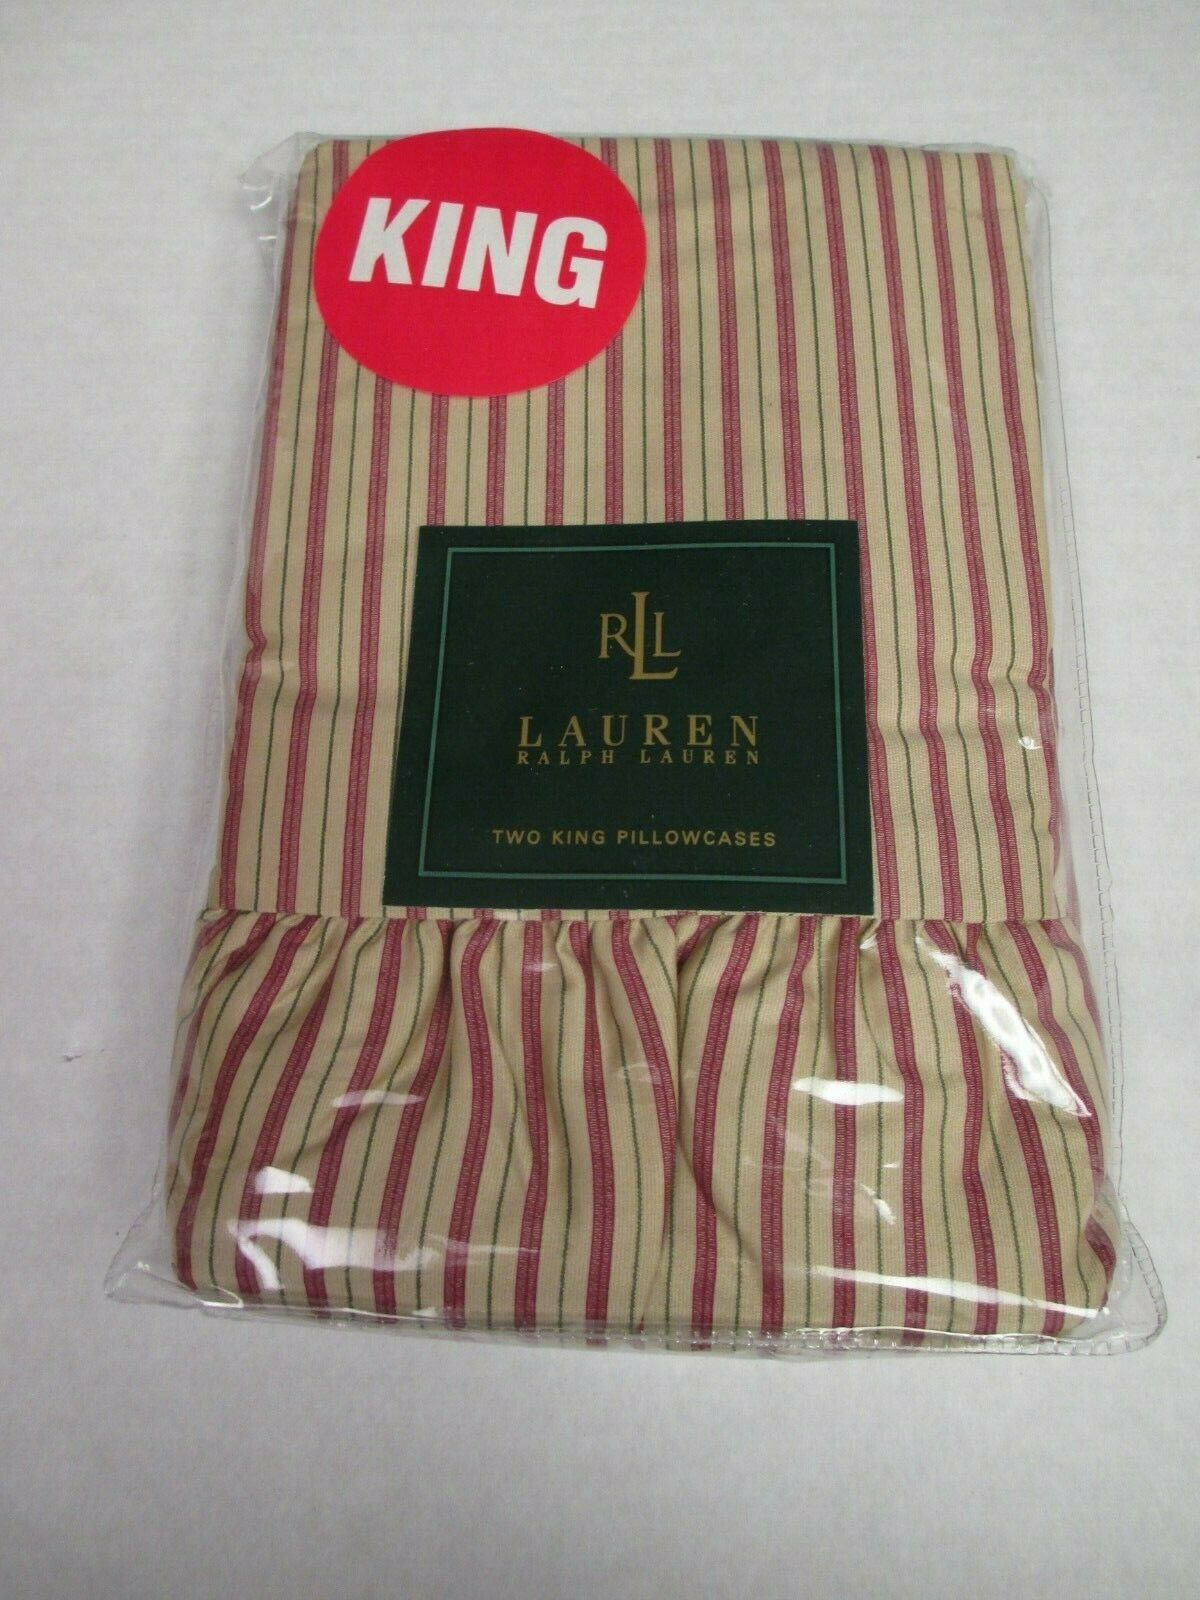 Ralph Lauren Grosvenor Square Red Tan Striped RUFFLED 2 King Pillowcases